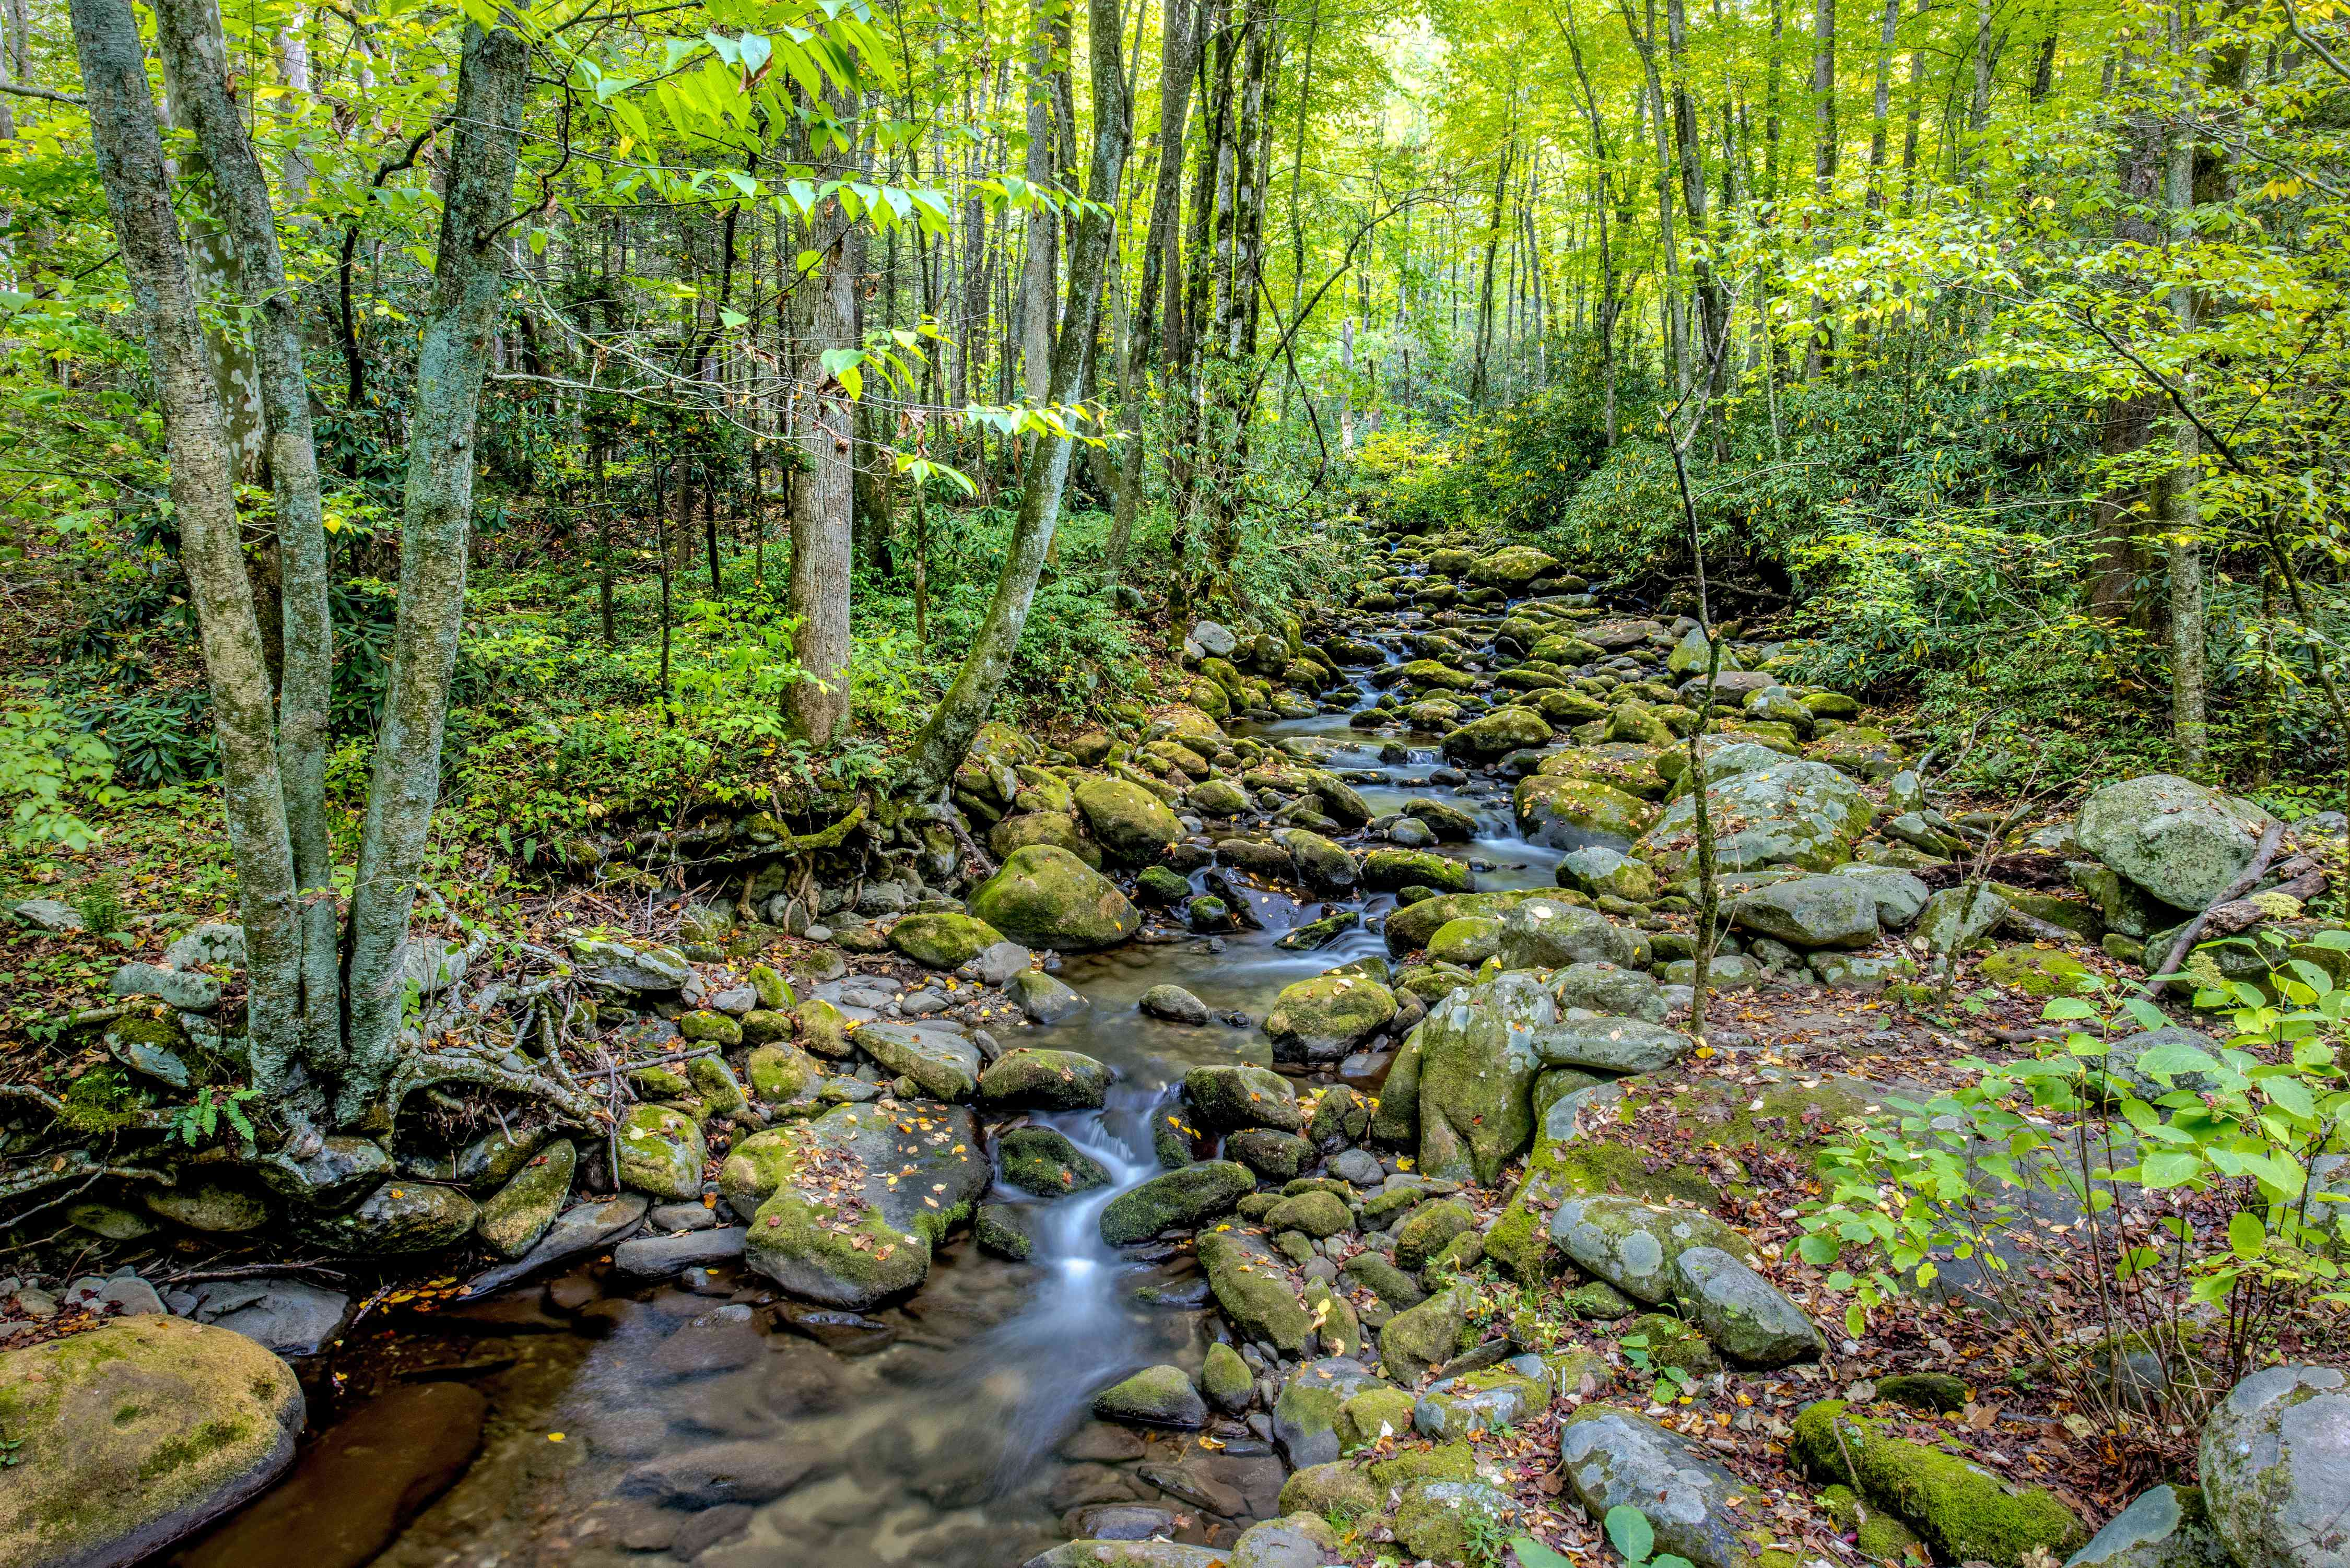 Hiking a creek in the Great Smoky Mountains National Park